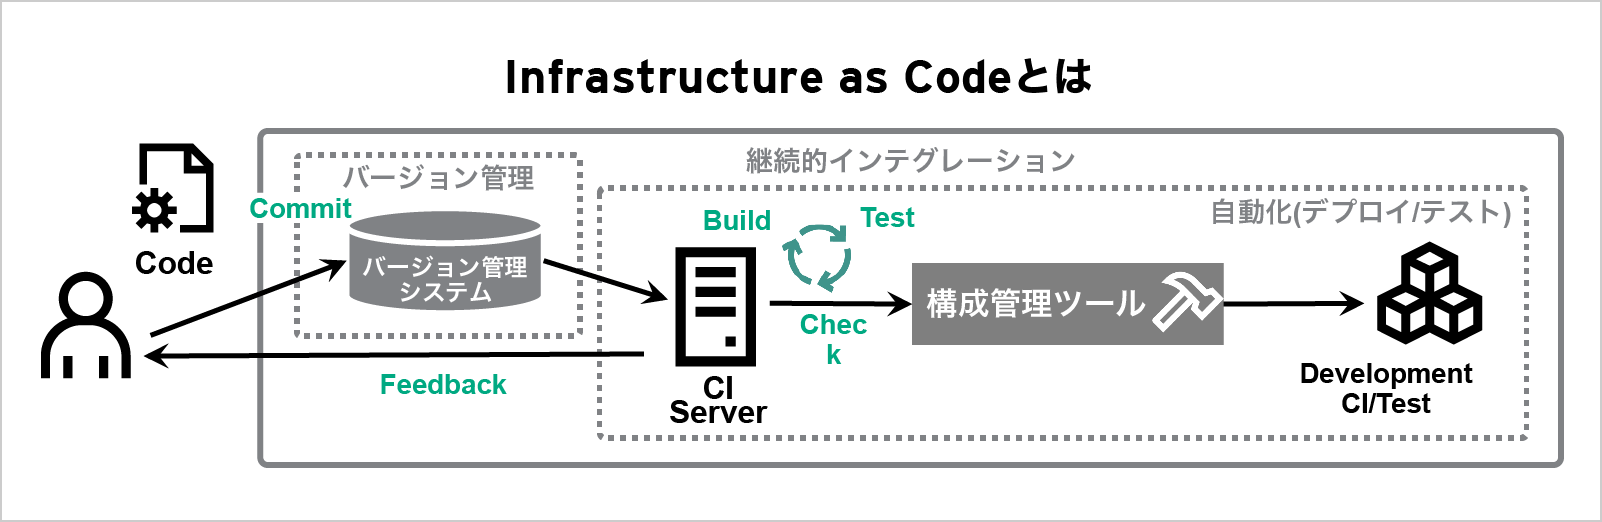 Infrastructure as Codeとは